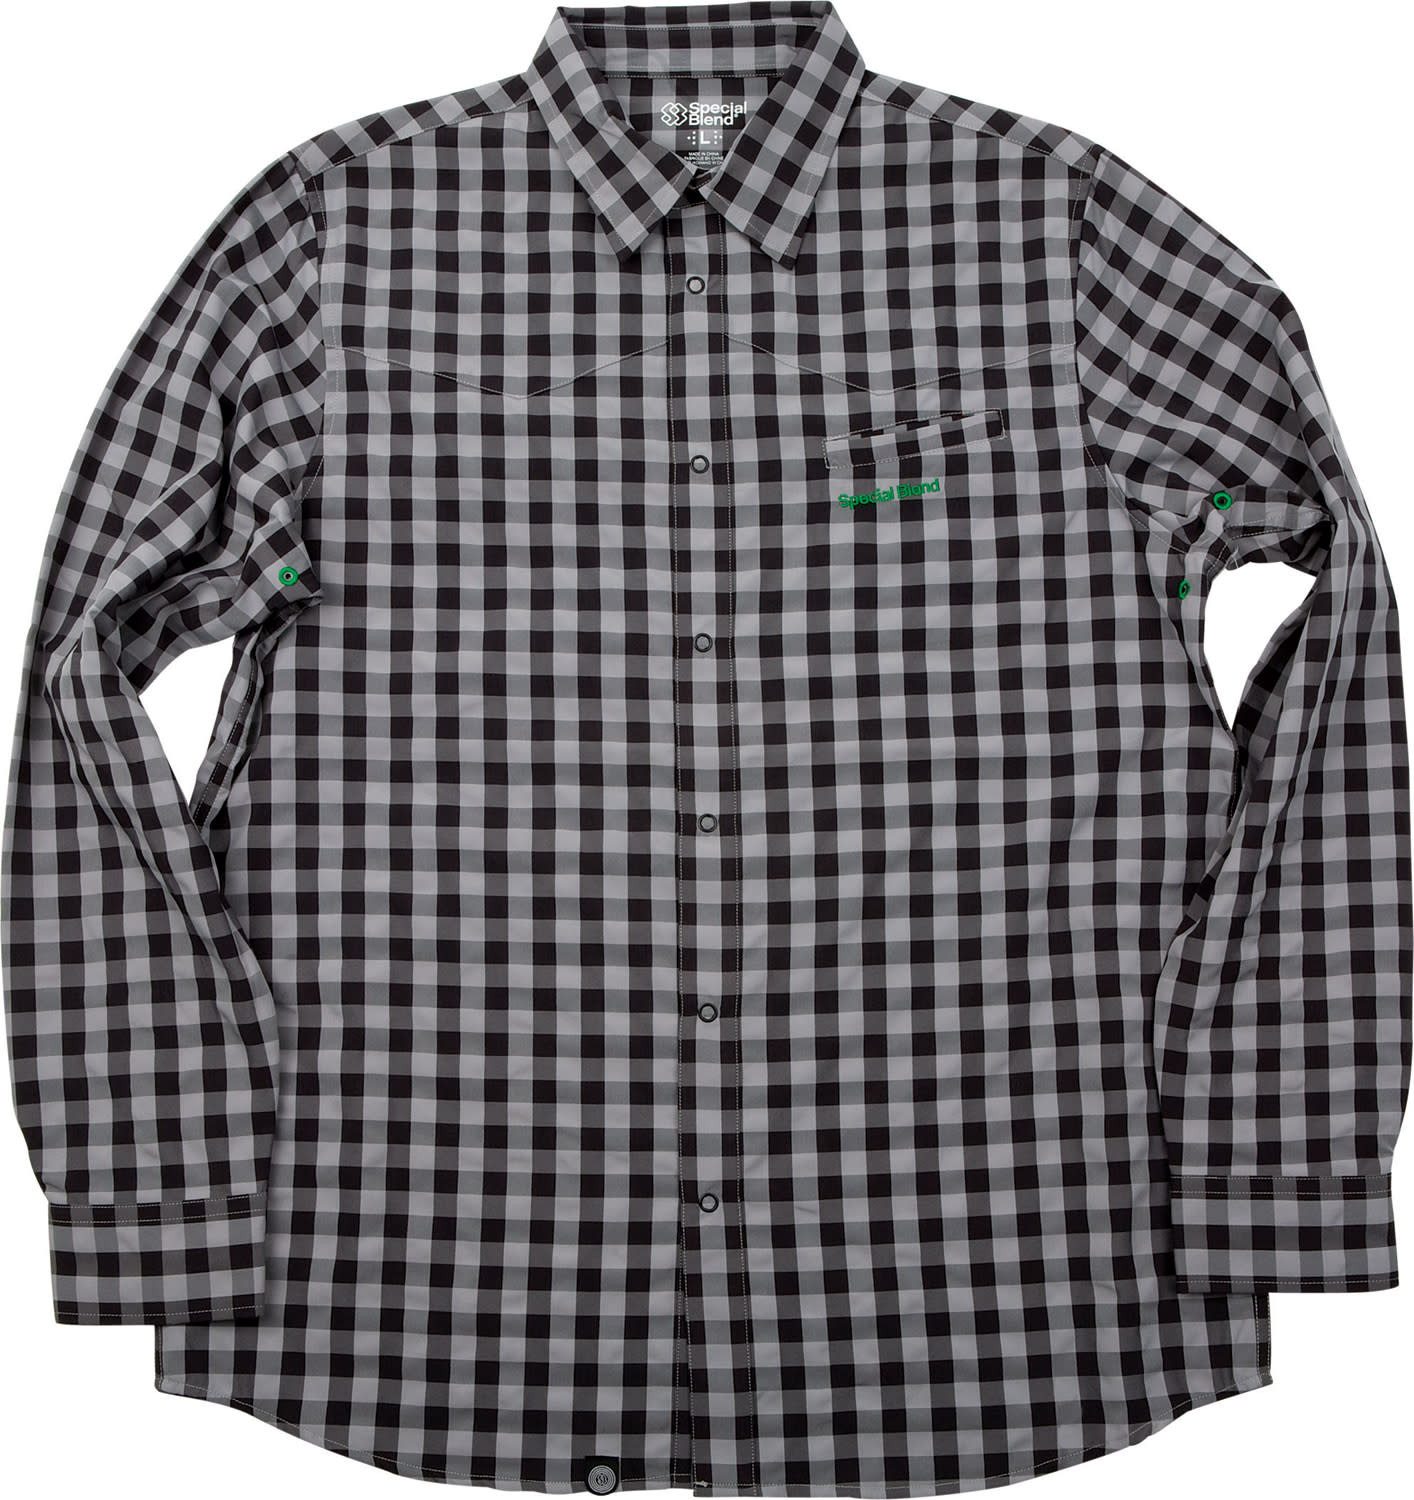 Shop for Special Blend Dress Up Shirt Baselayer Top Grey Buffalo Plaid - Men's